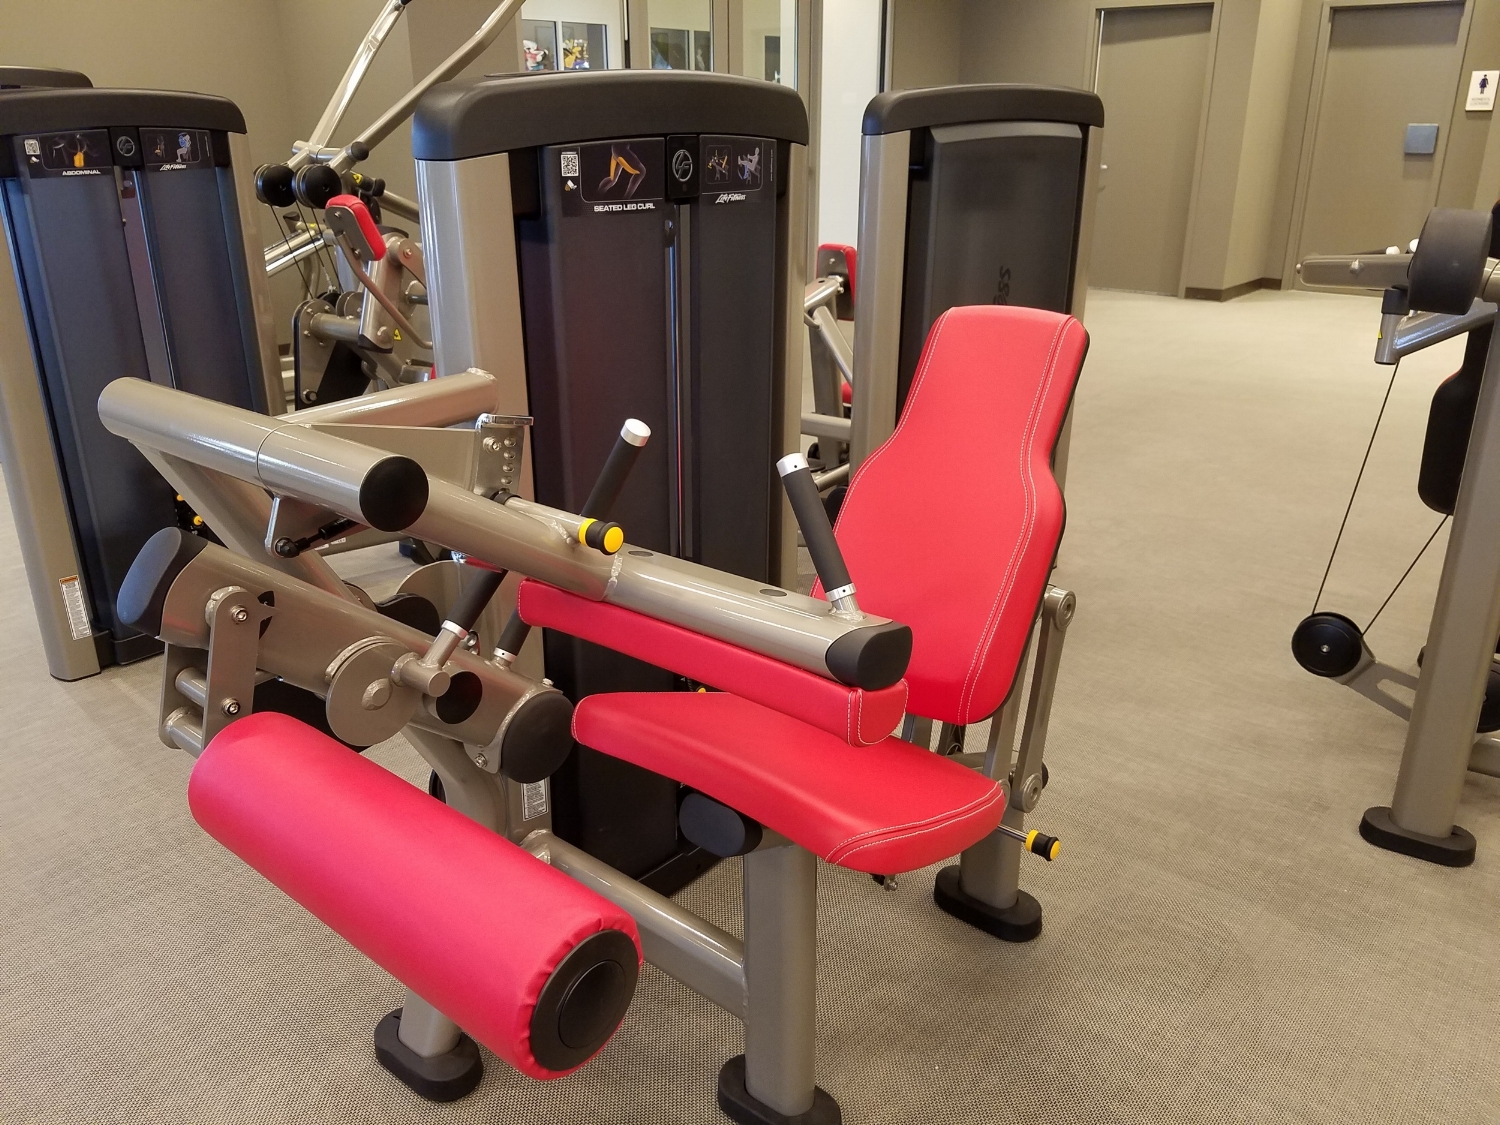 Workout Equipment in Kalina Health and Fitness Room